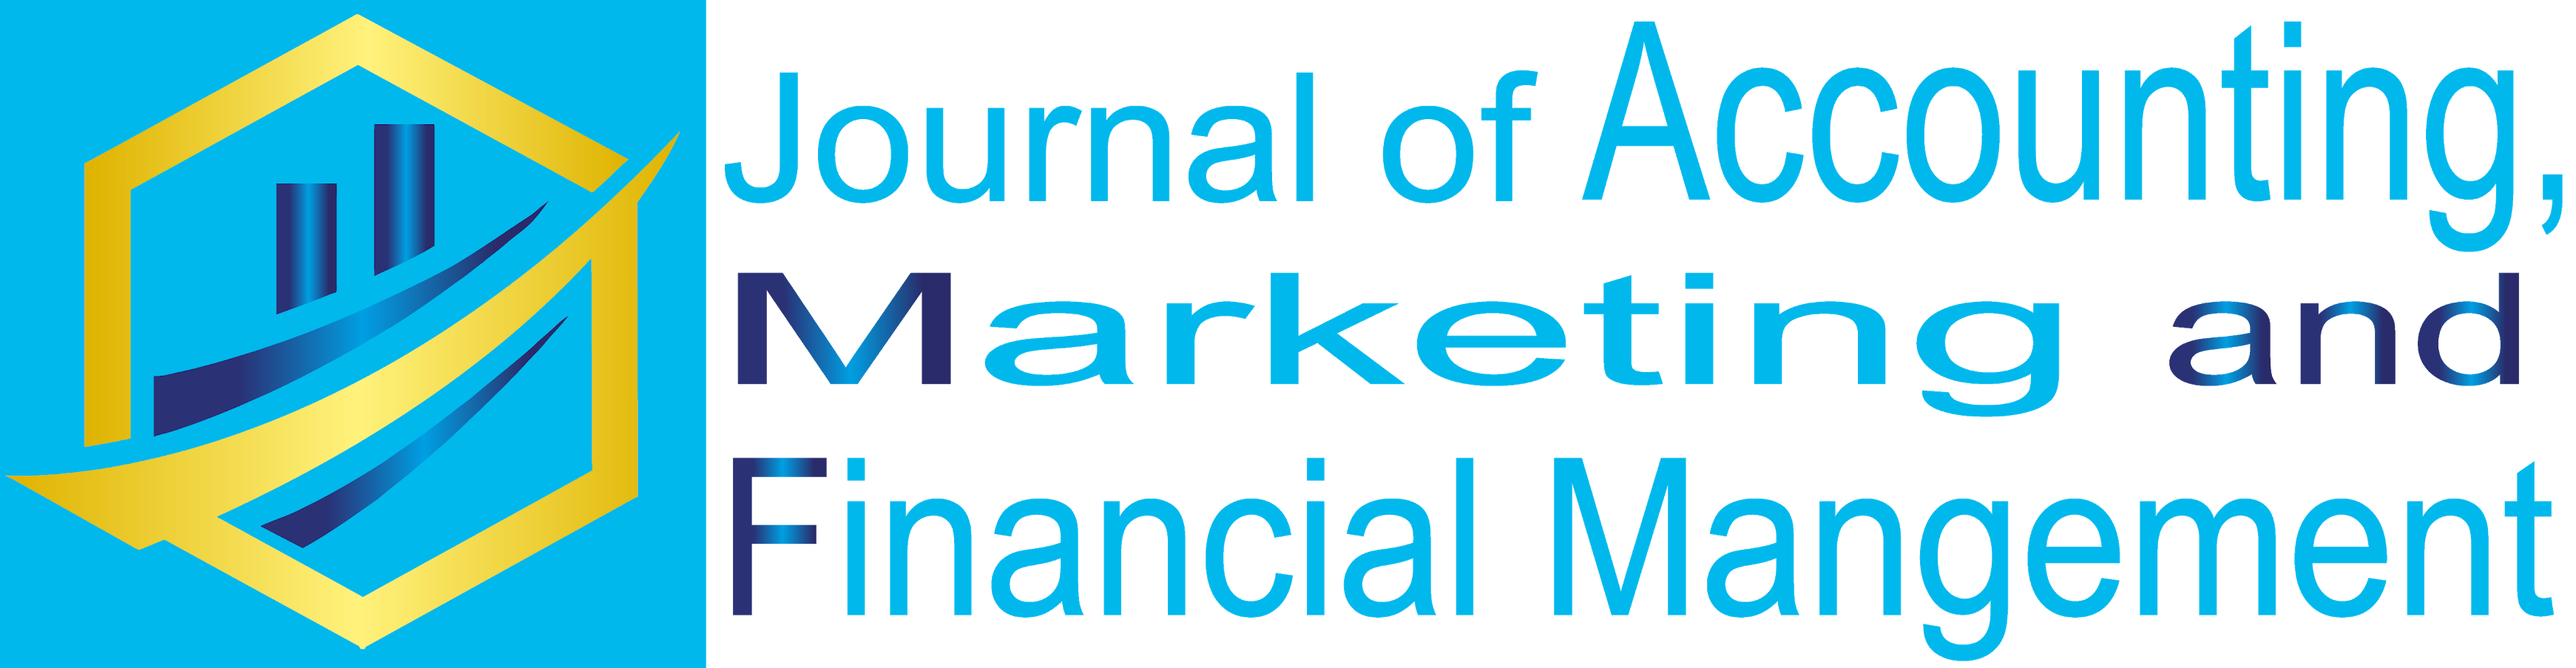 Journal of Accounting, Marketing and Financial Management (JAMFM)